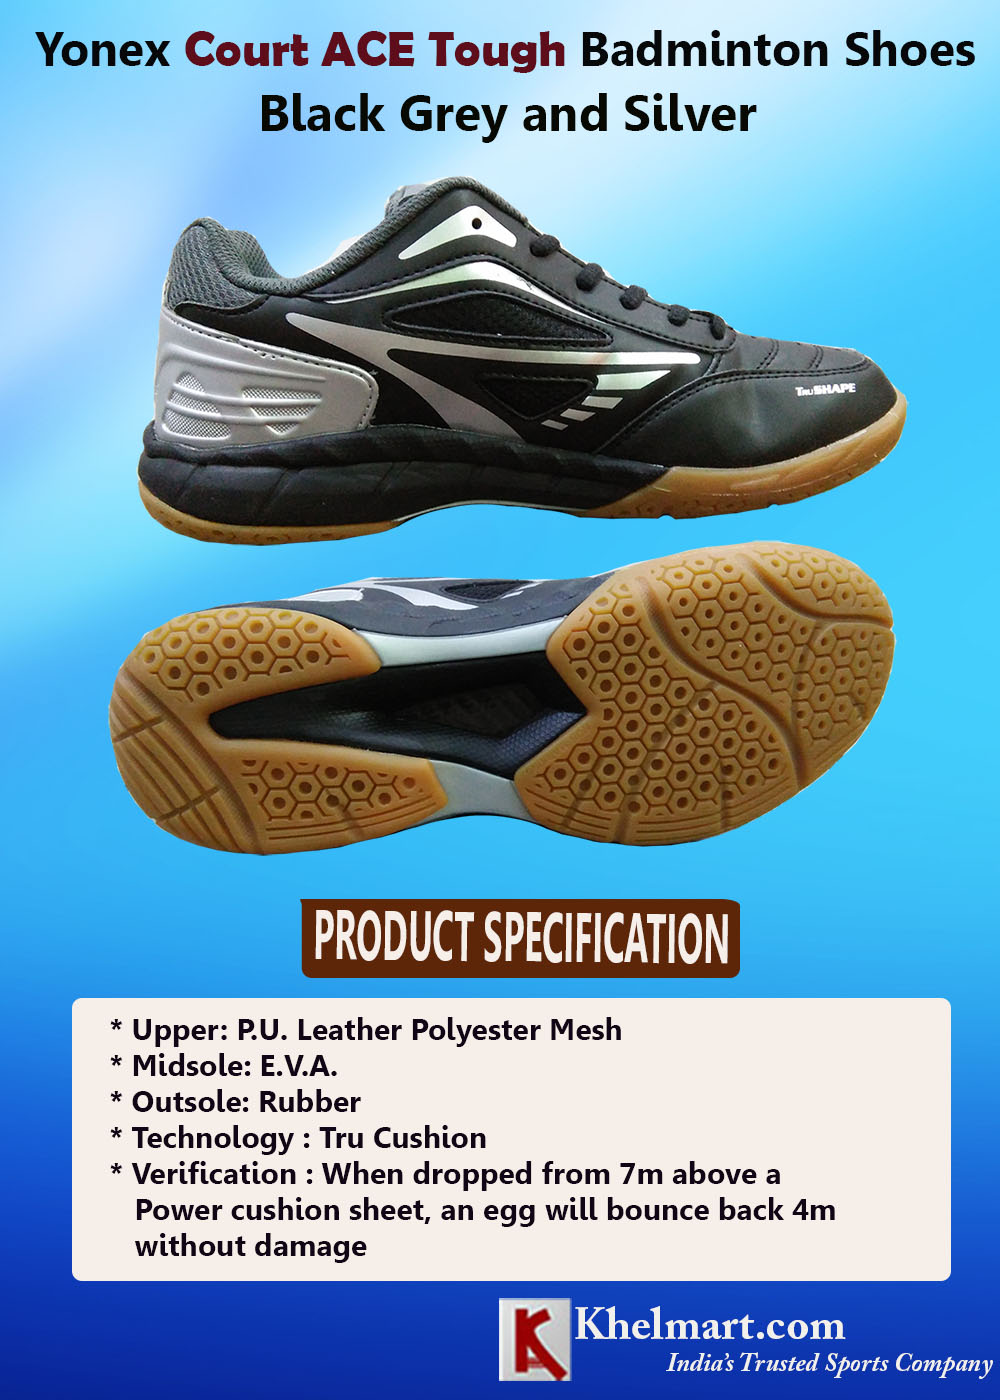 Yonex Court ACE Tough Badminton Shoes Black Grey and Silver_5